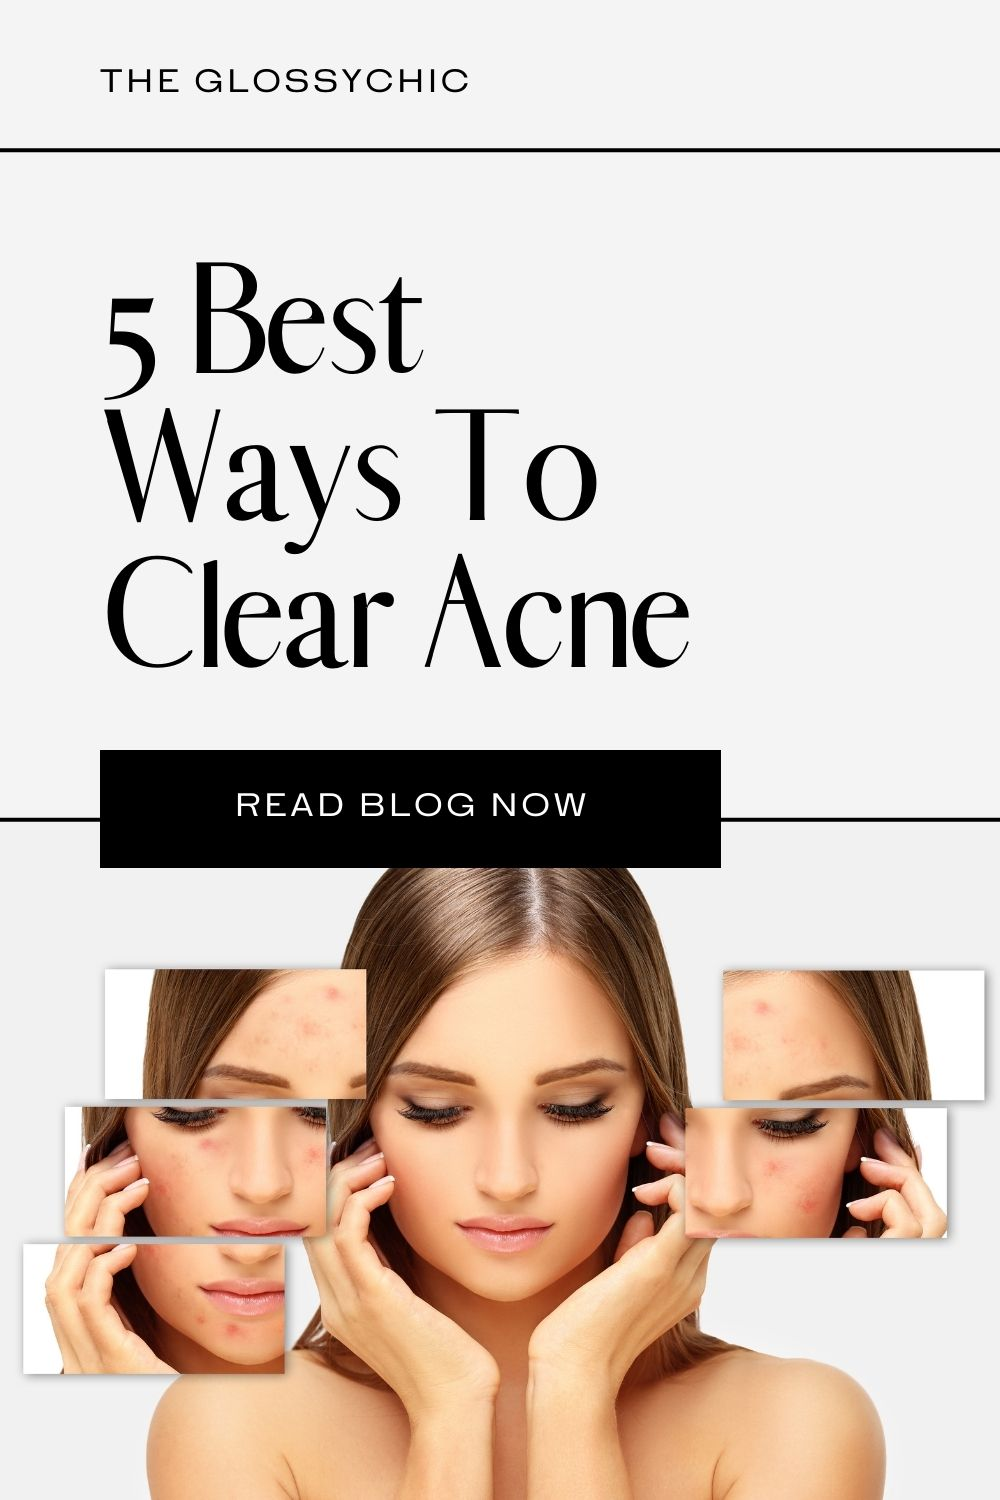 5 best ways to clear acne